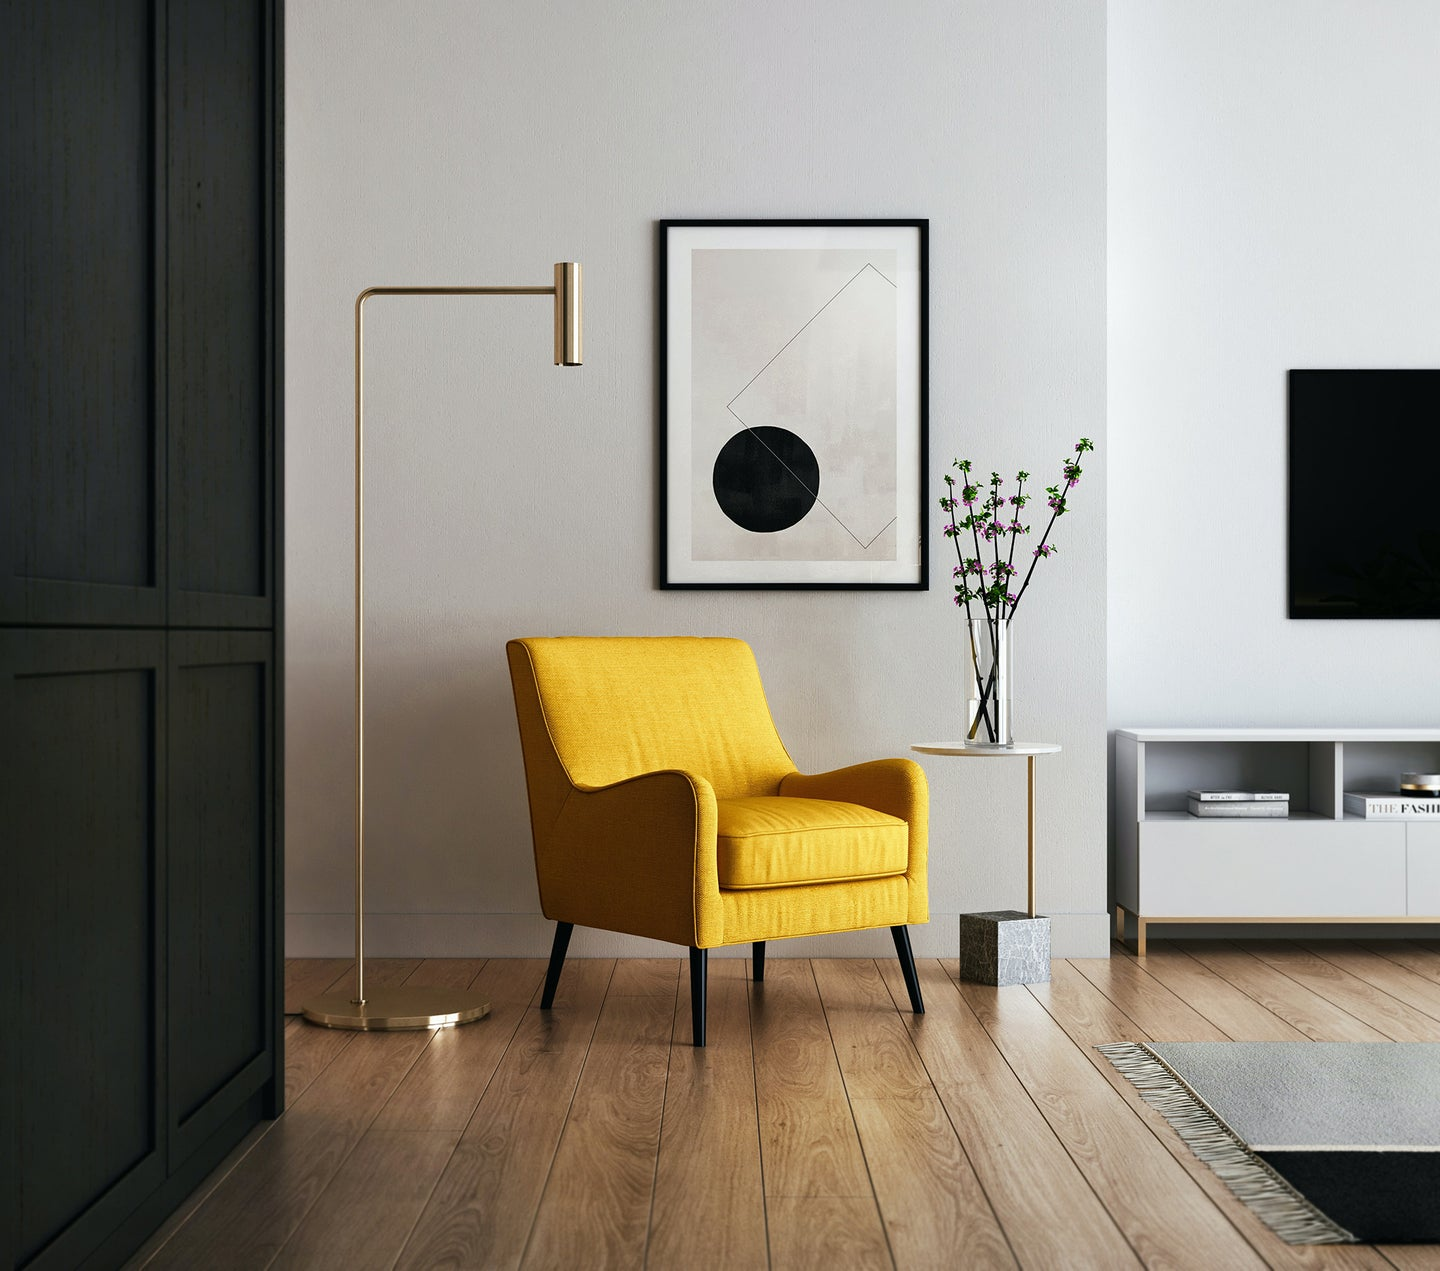 living room with a yellow chair, gold skinny lamp, and a painting on the wall